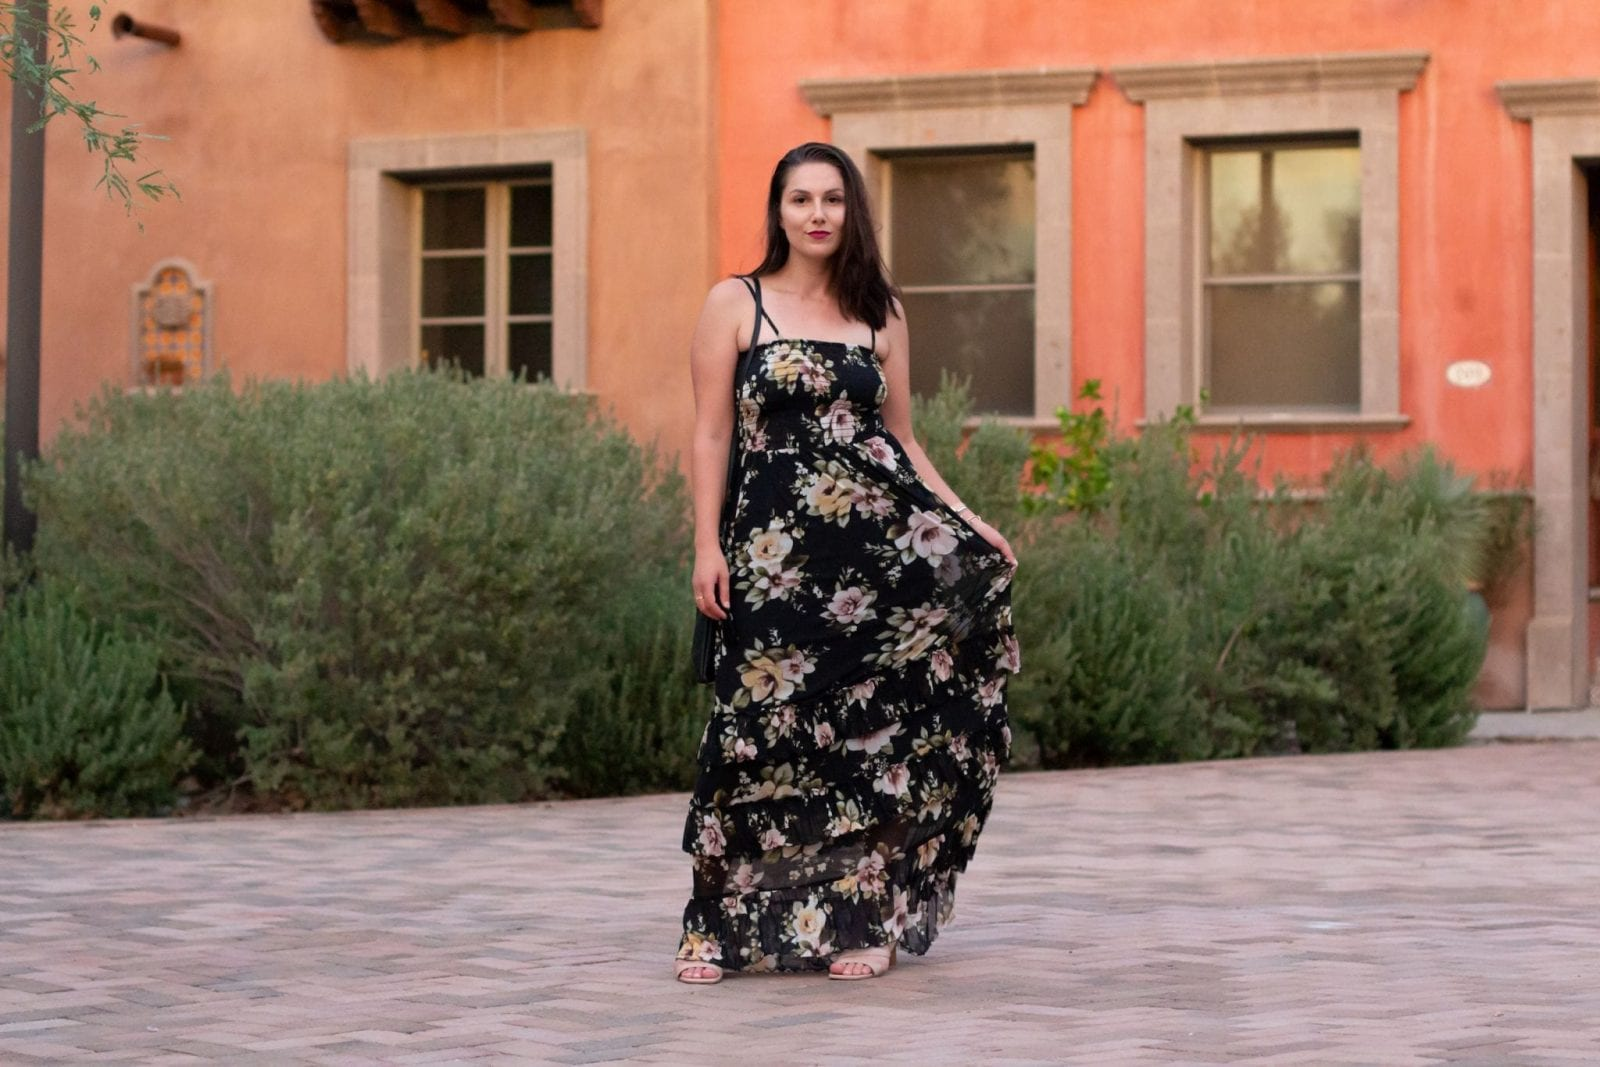 This is a full body shot of me standing at San Mercado Agustin in a black floral maxi dress.